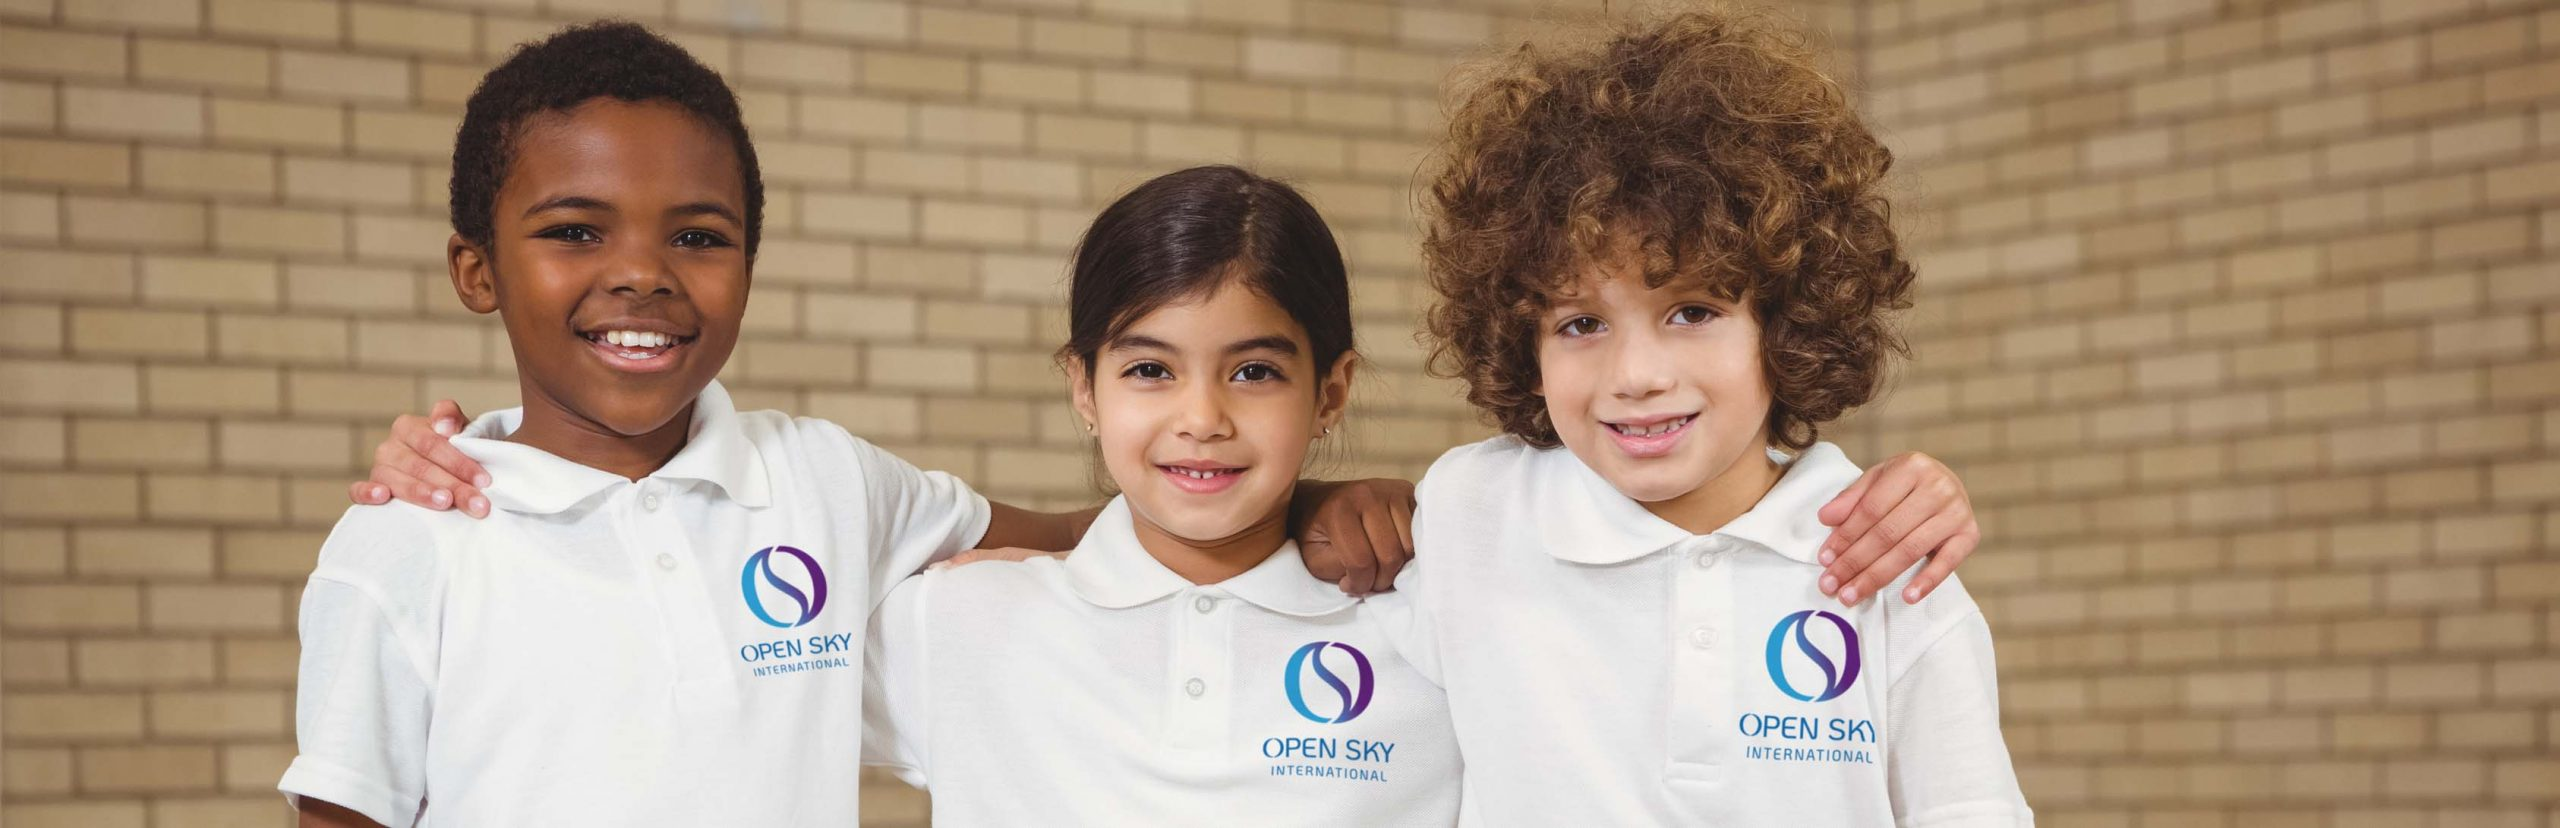 ecole bilingue maroc open sky international